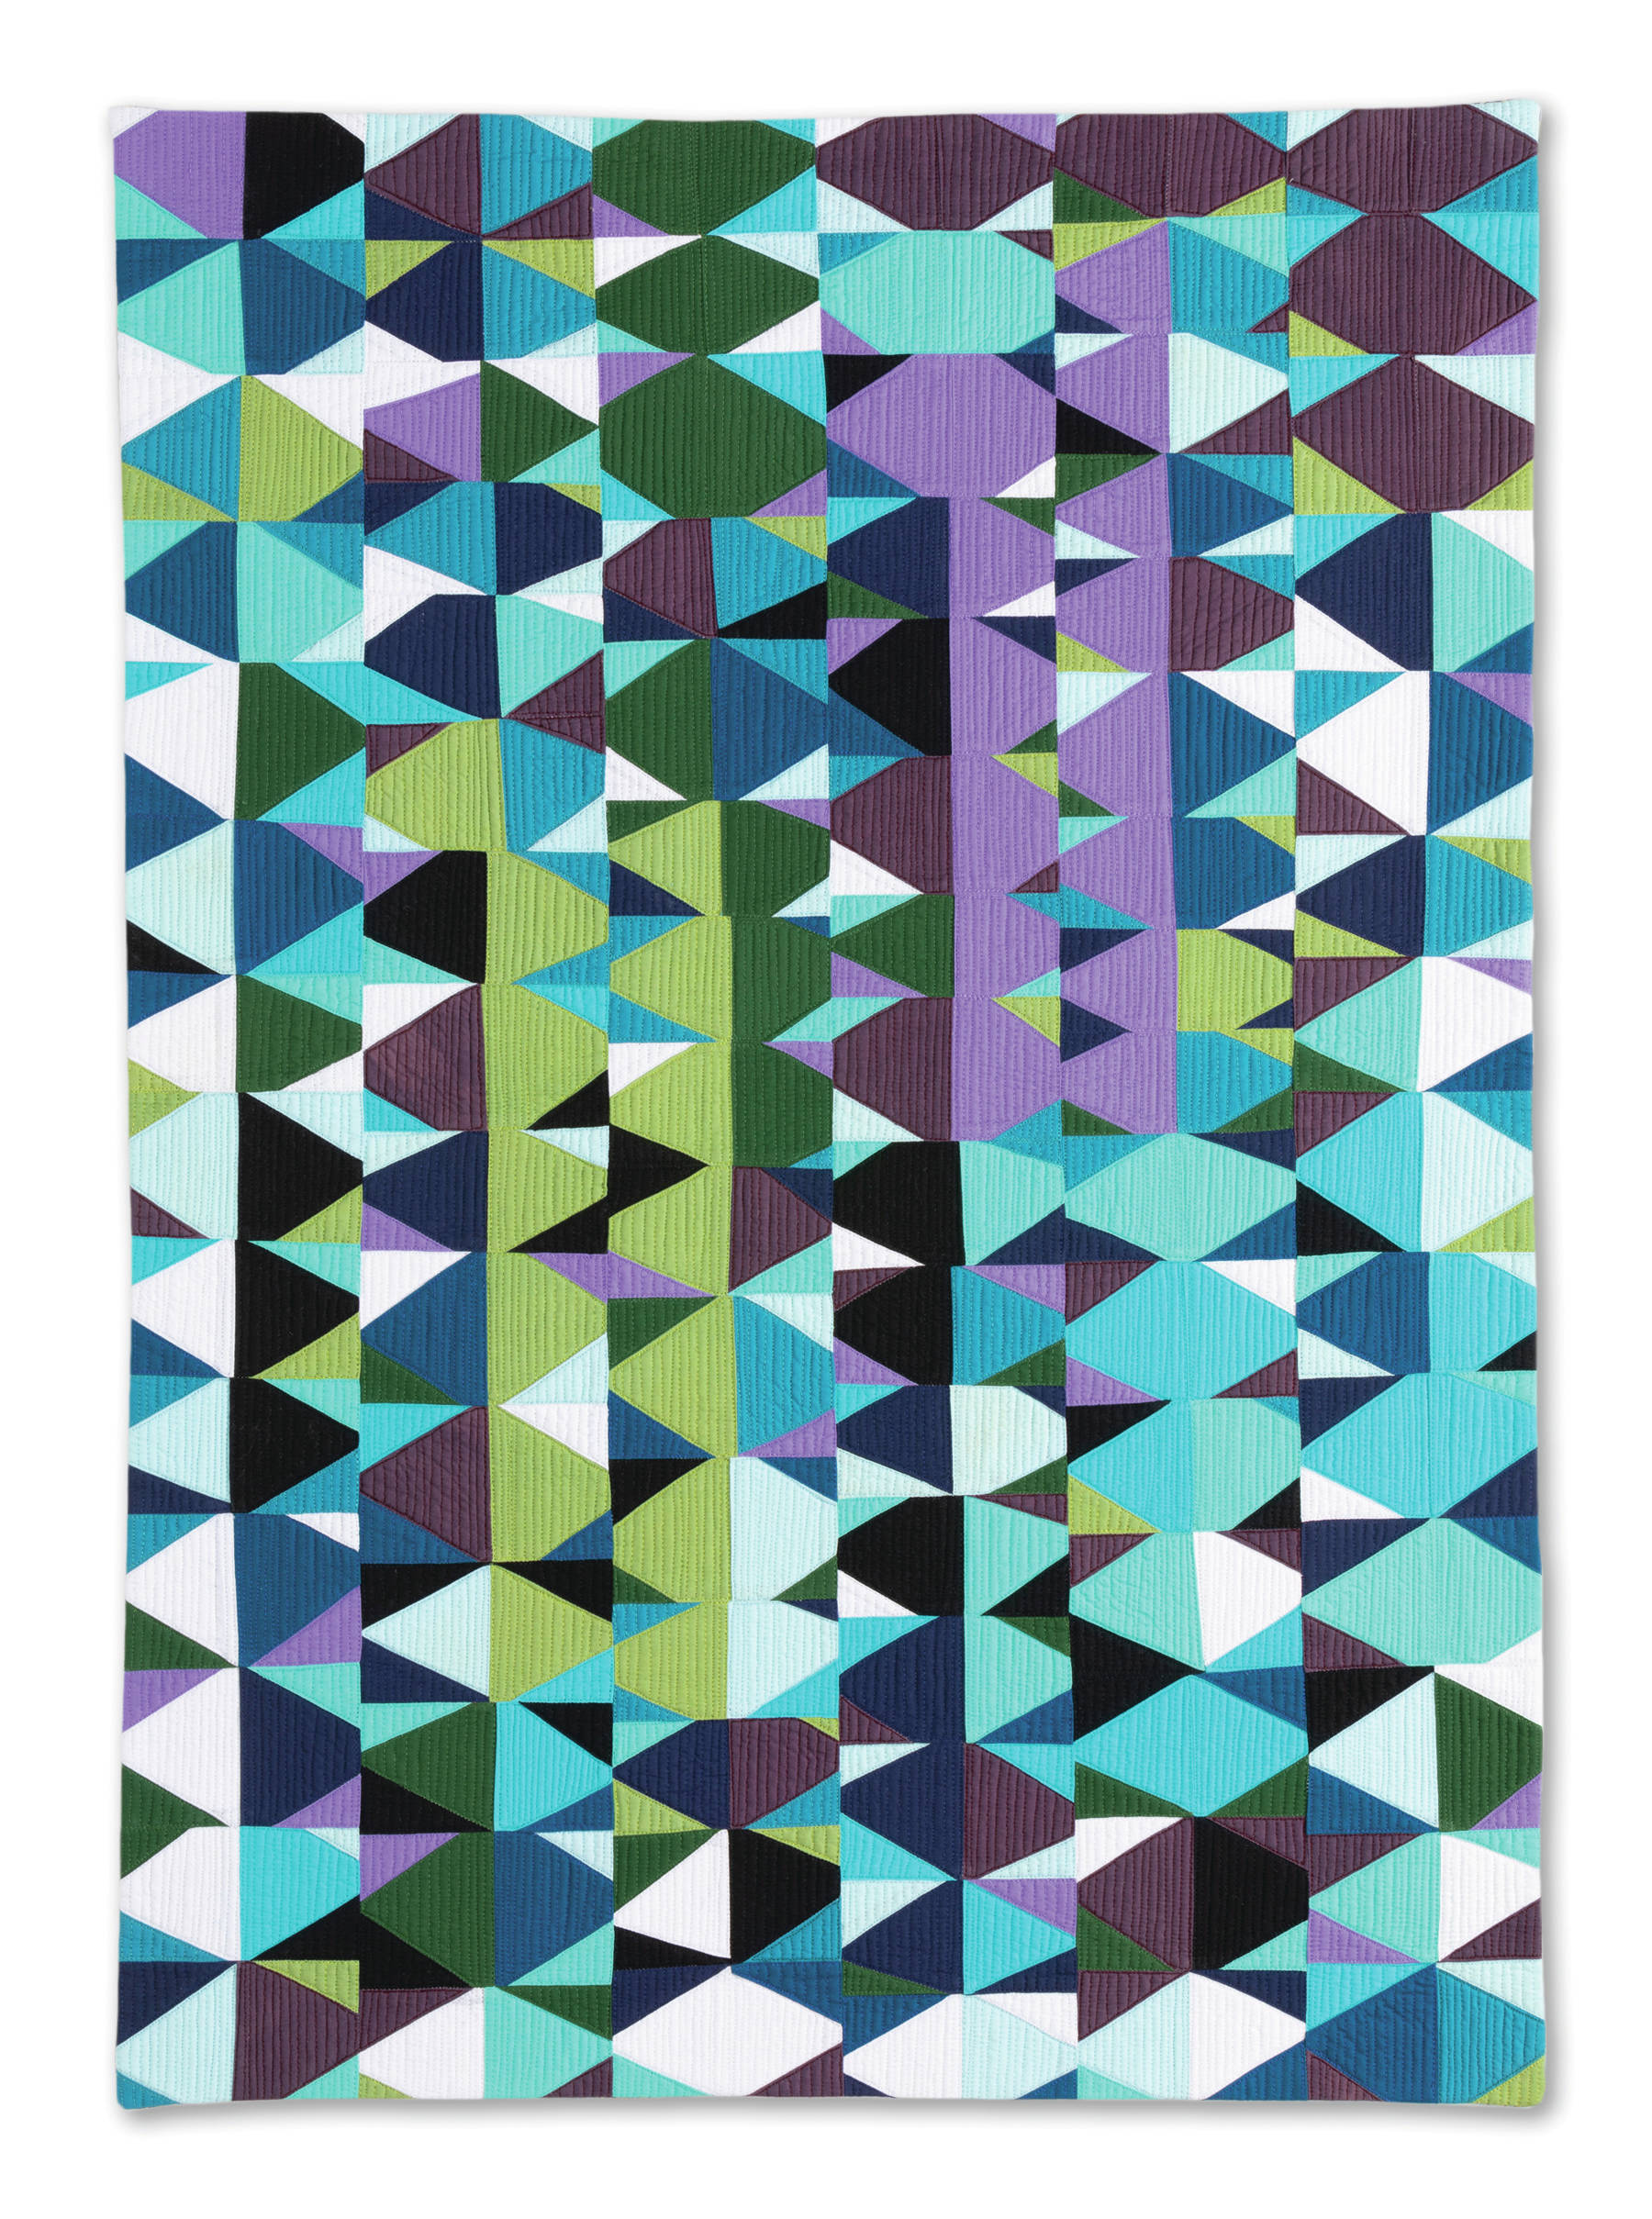 """Maria Shell's """"Break Up,"""" one of the 45 art quilts featured in """"Shifting Tides: Cloth in Convergence,"""" on exhibit from Oct. 9 to Nov. 28, 2020, at the Pratt Museum in Homer, Alaska. (Photo by Chris Arend)"""